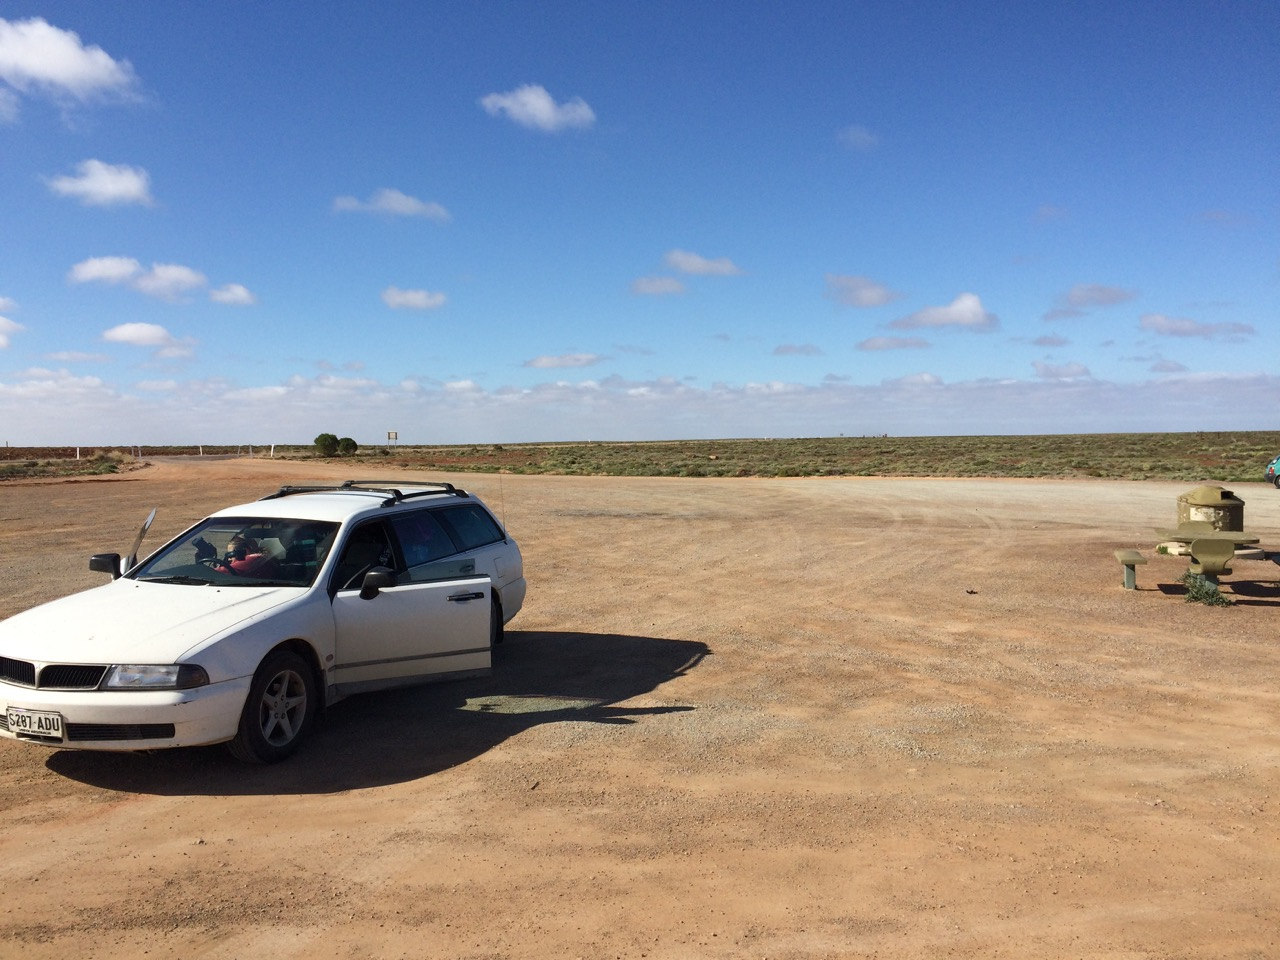 Our car, just casually hanging out in the outback.